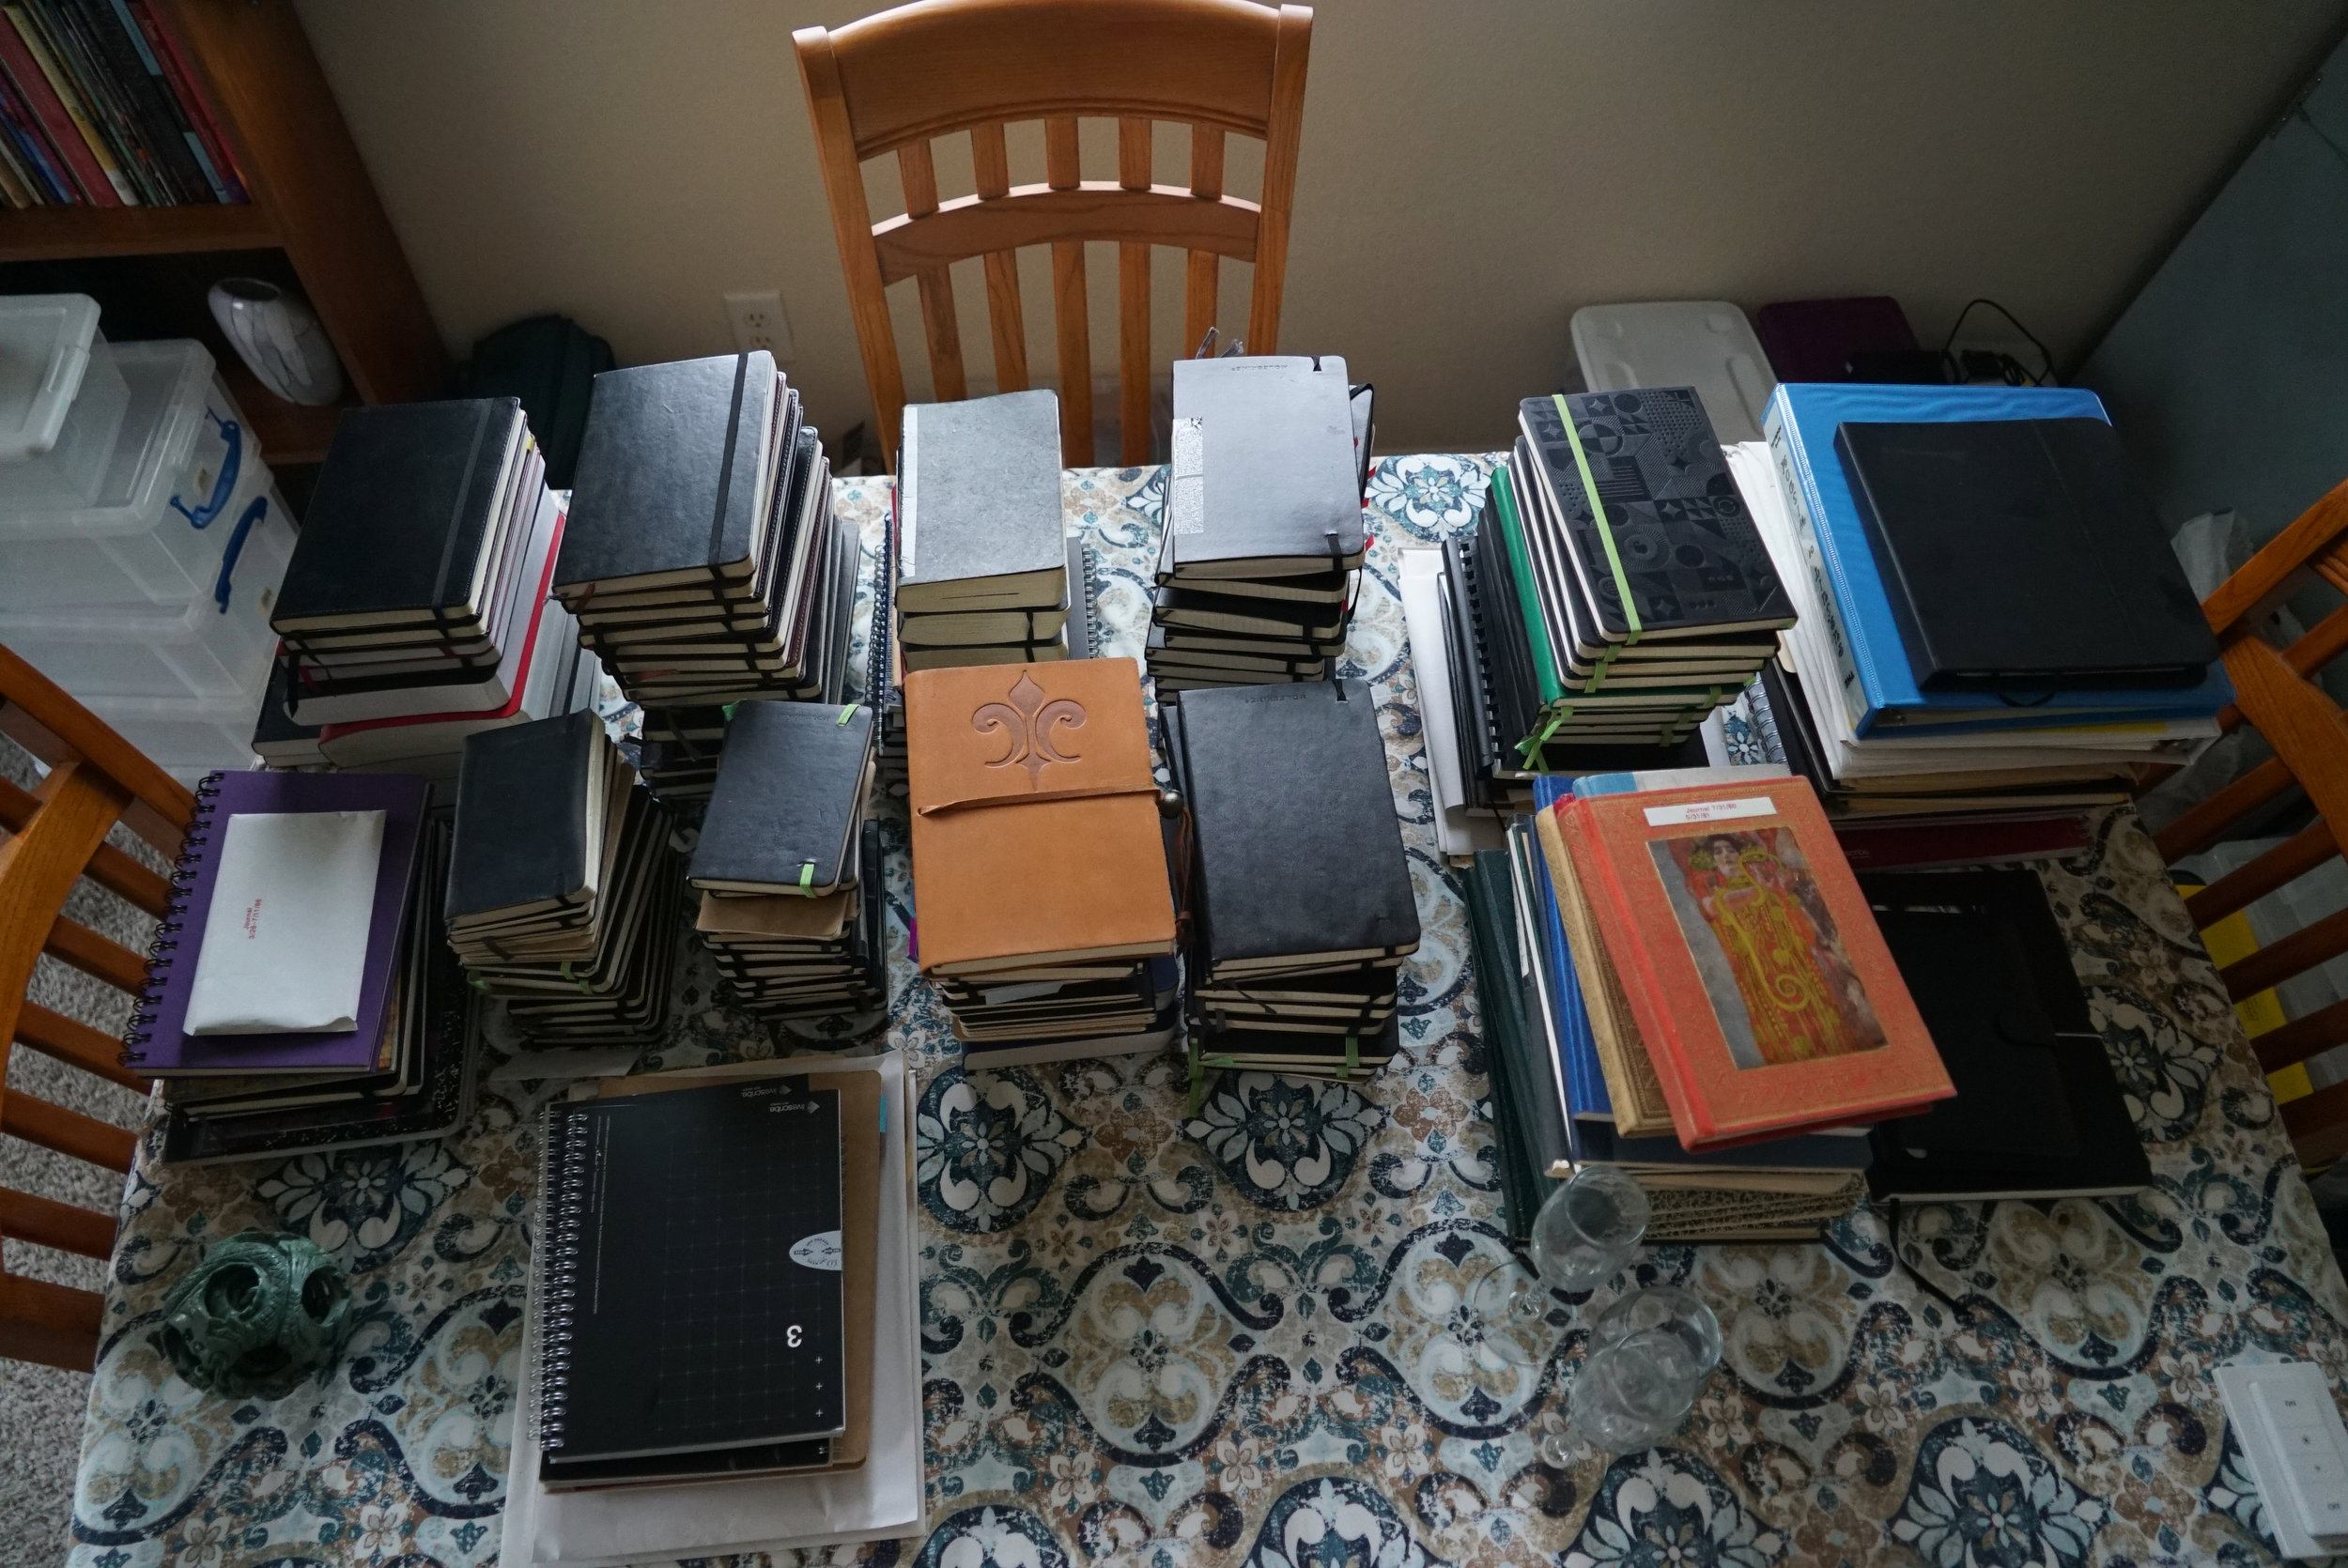 This pile of journals spans from 1971 to 2019. In the 1990's, I used the Franklin Panner system as journal/planners, and the 3 boxes of those journals are not included here. I already tossed them out.